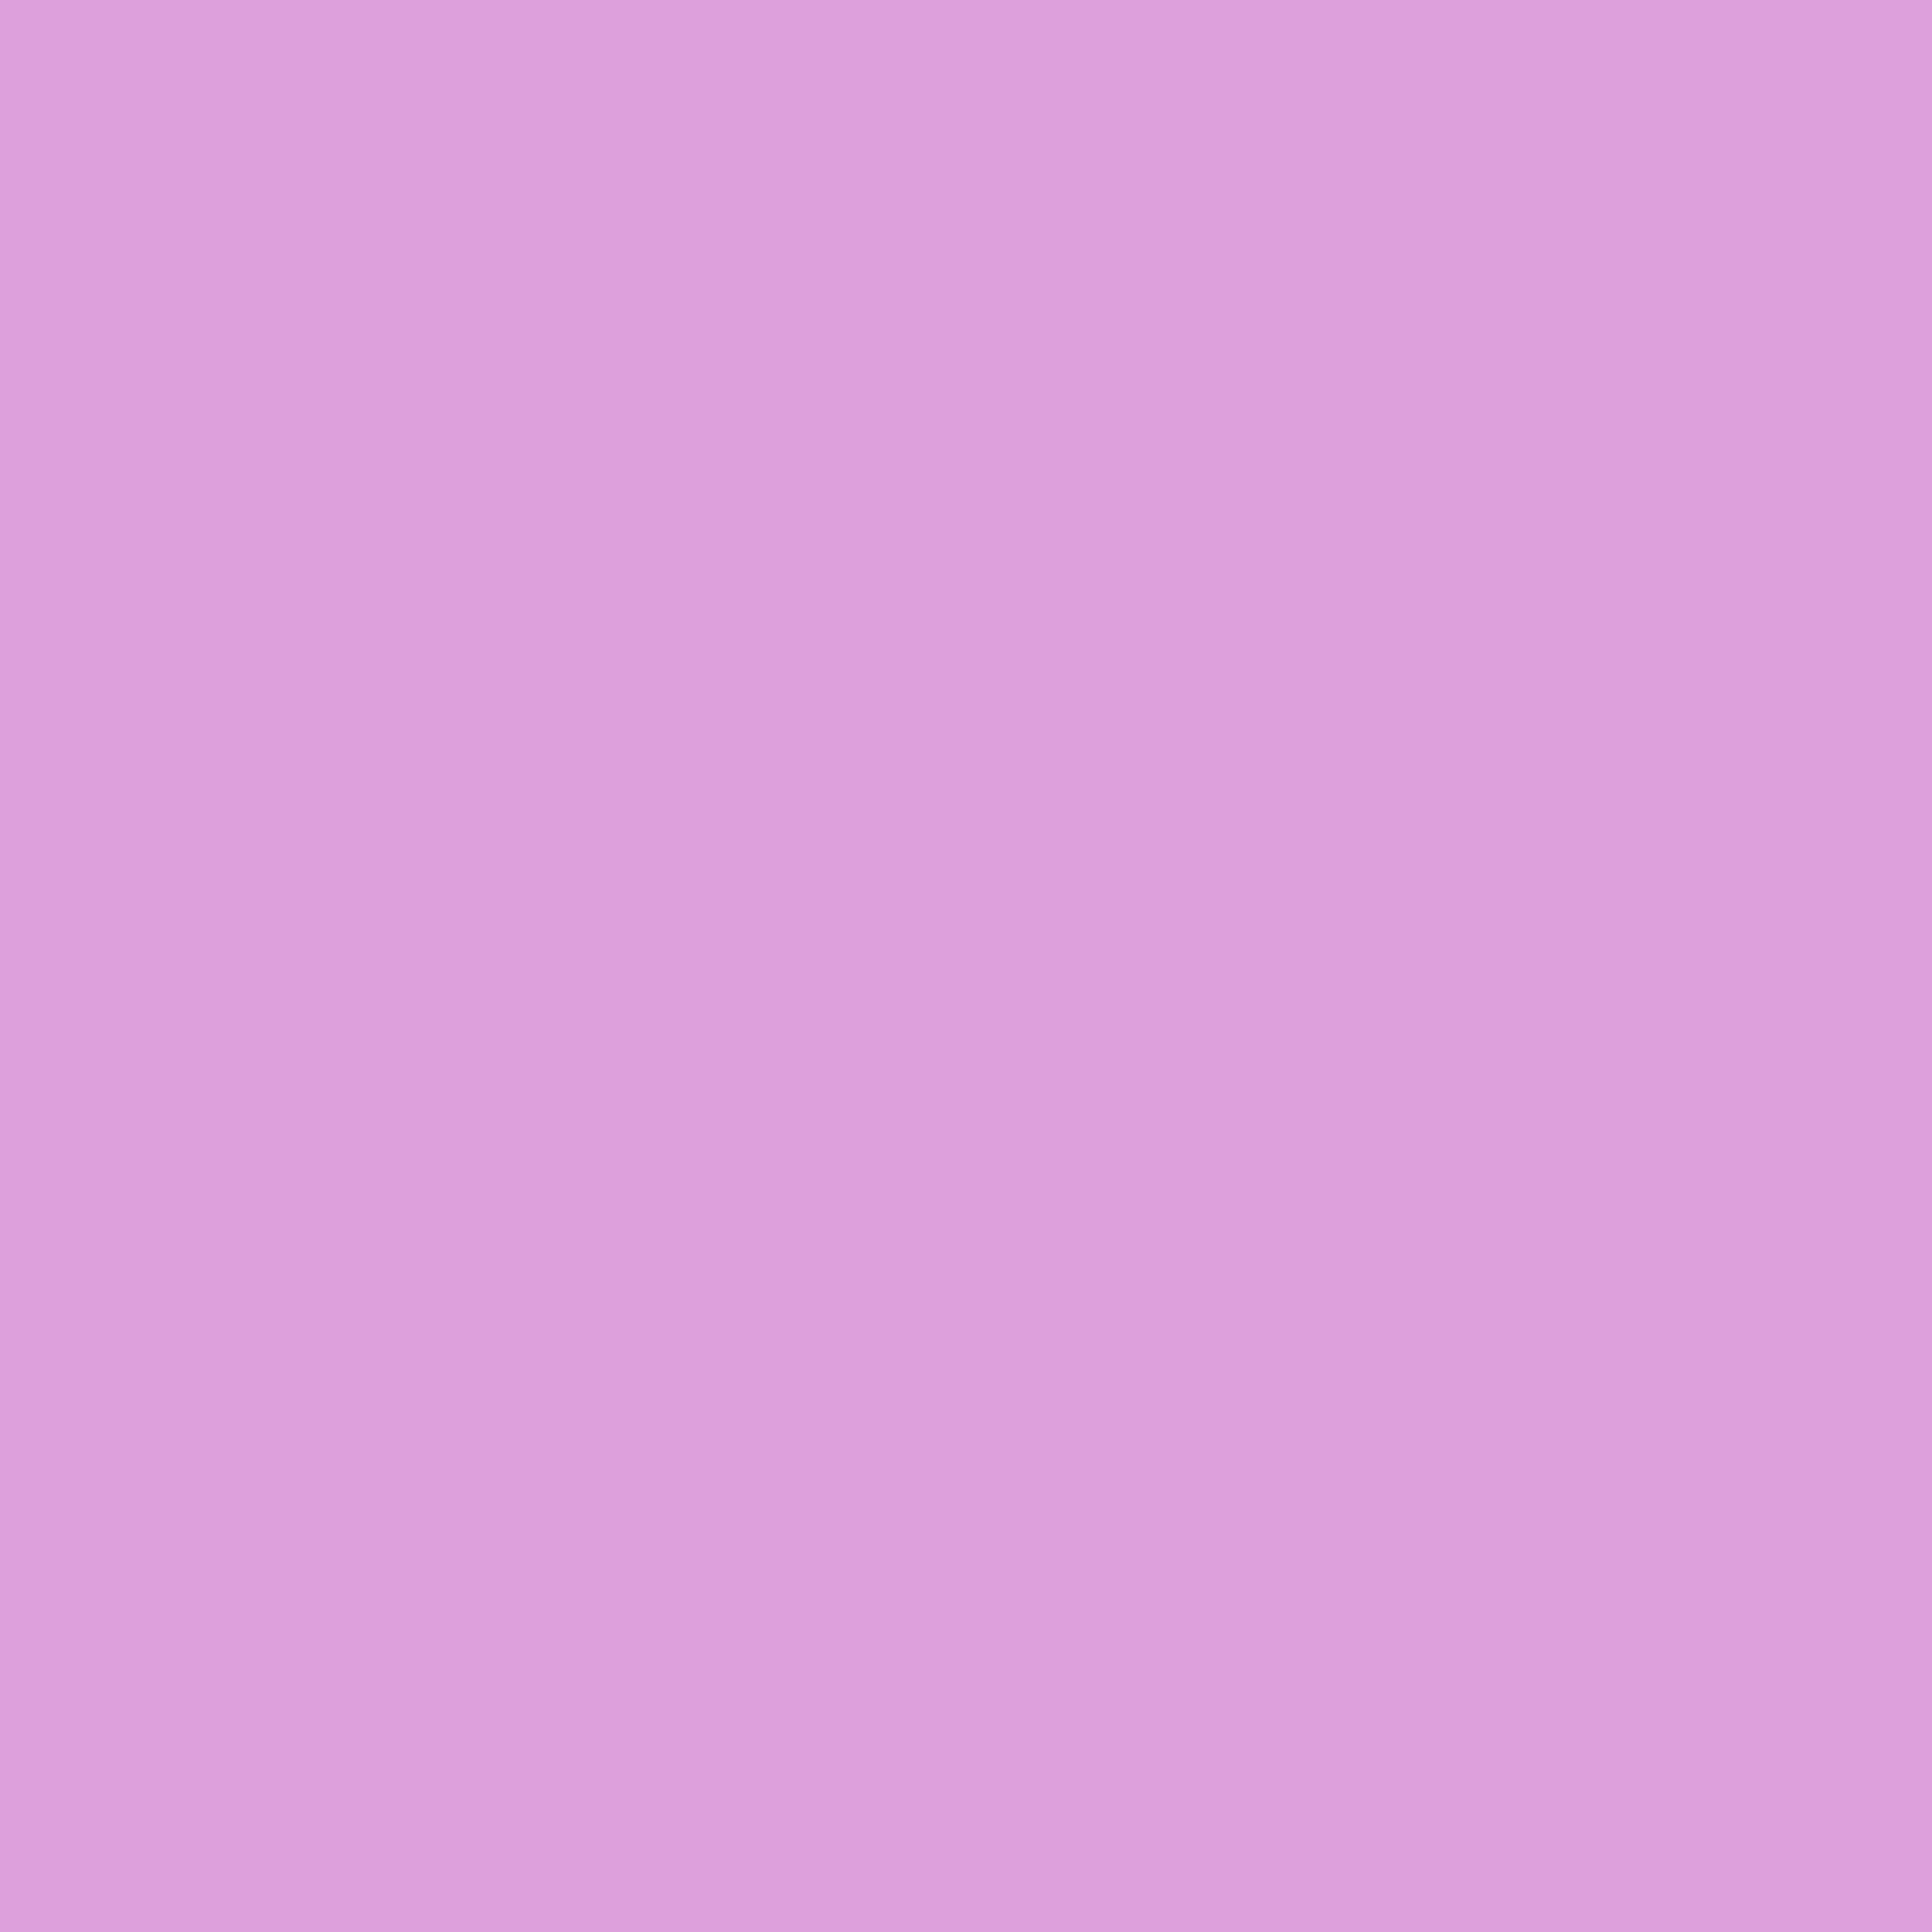 3600x3600 Plum Web Solid Color Background